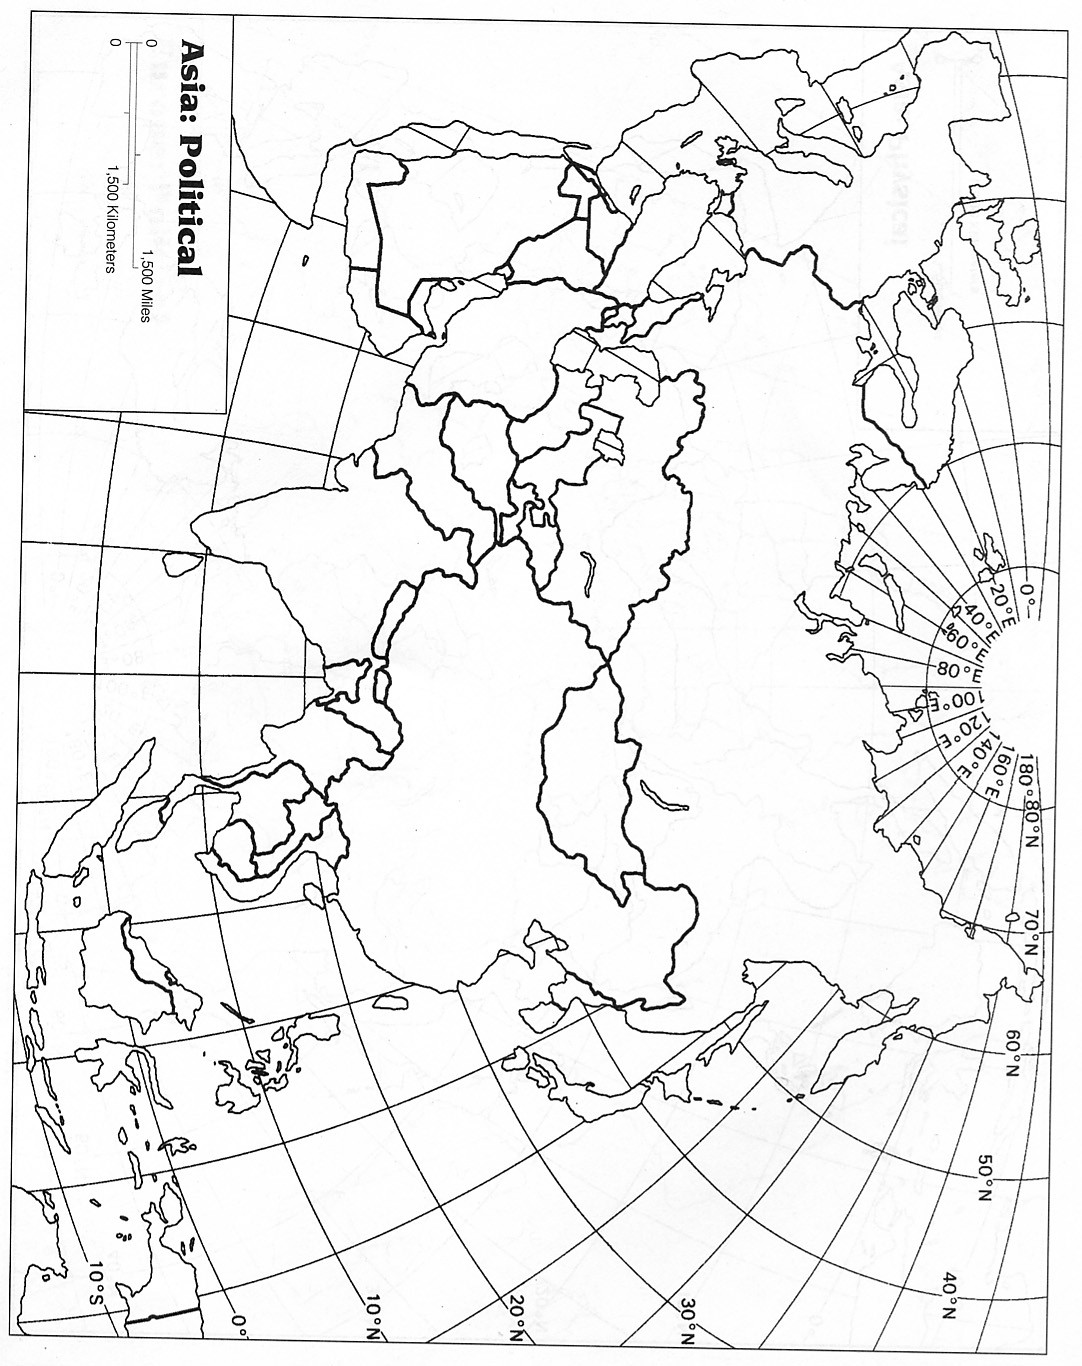 World history drawing at getdrawings free for personal use 1082x1366 world review blank political map best of world history i map page gumiabroncs Gallery